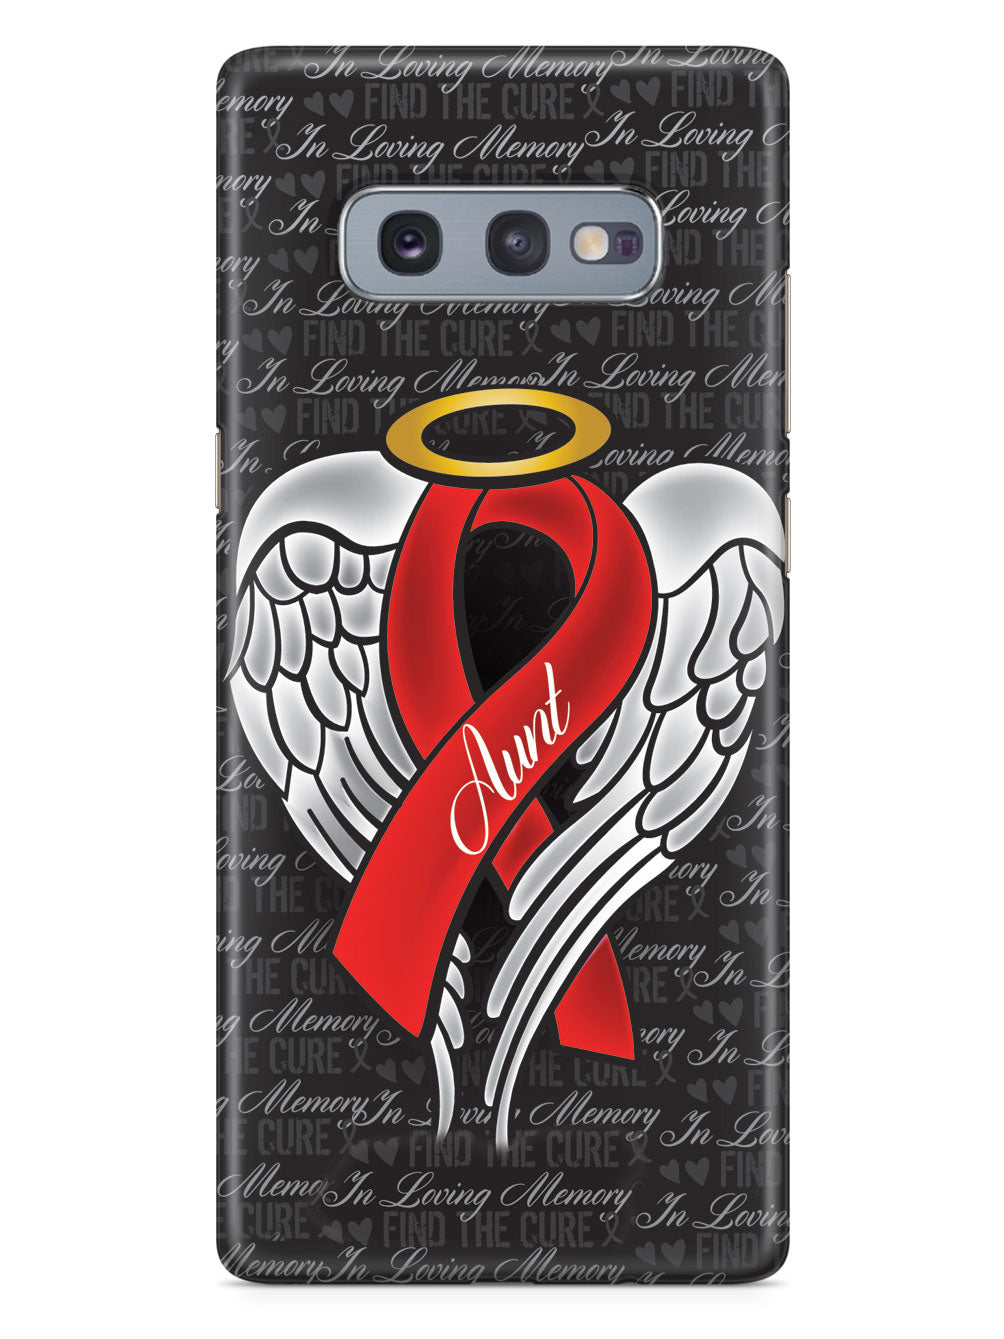 In Loving Memory of My Aunt - Red Ribbon Case